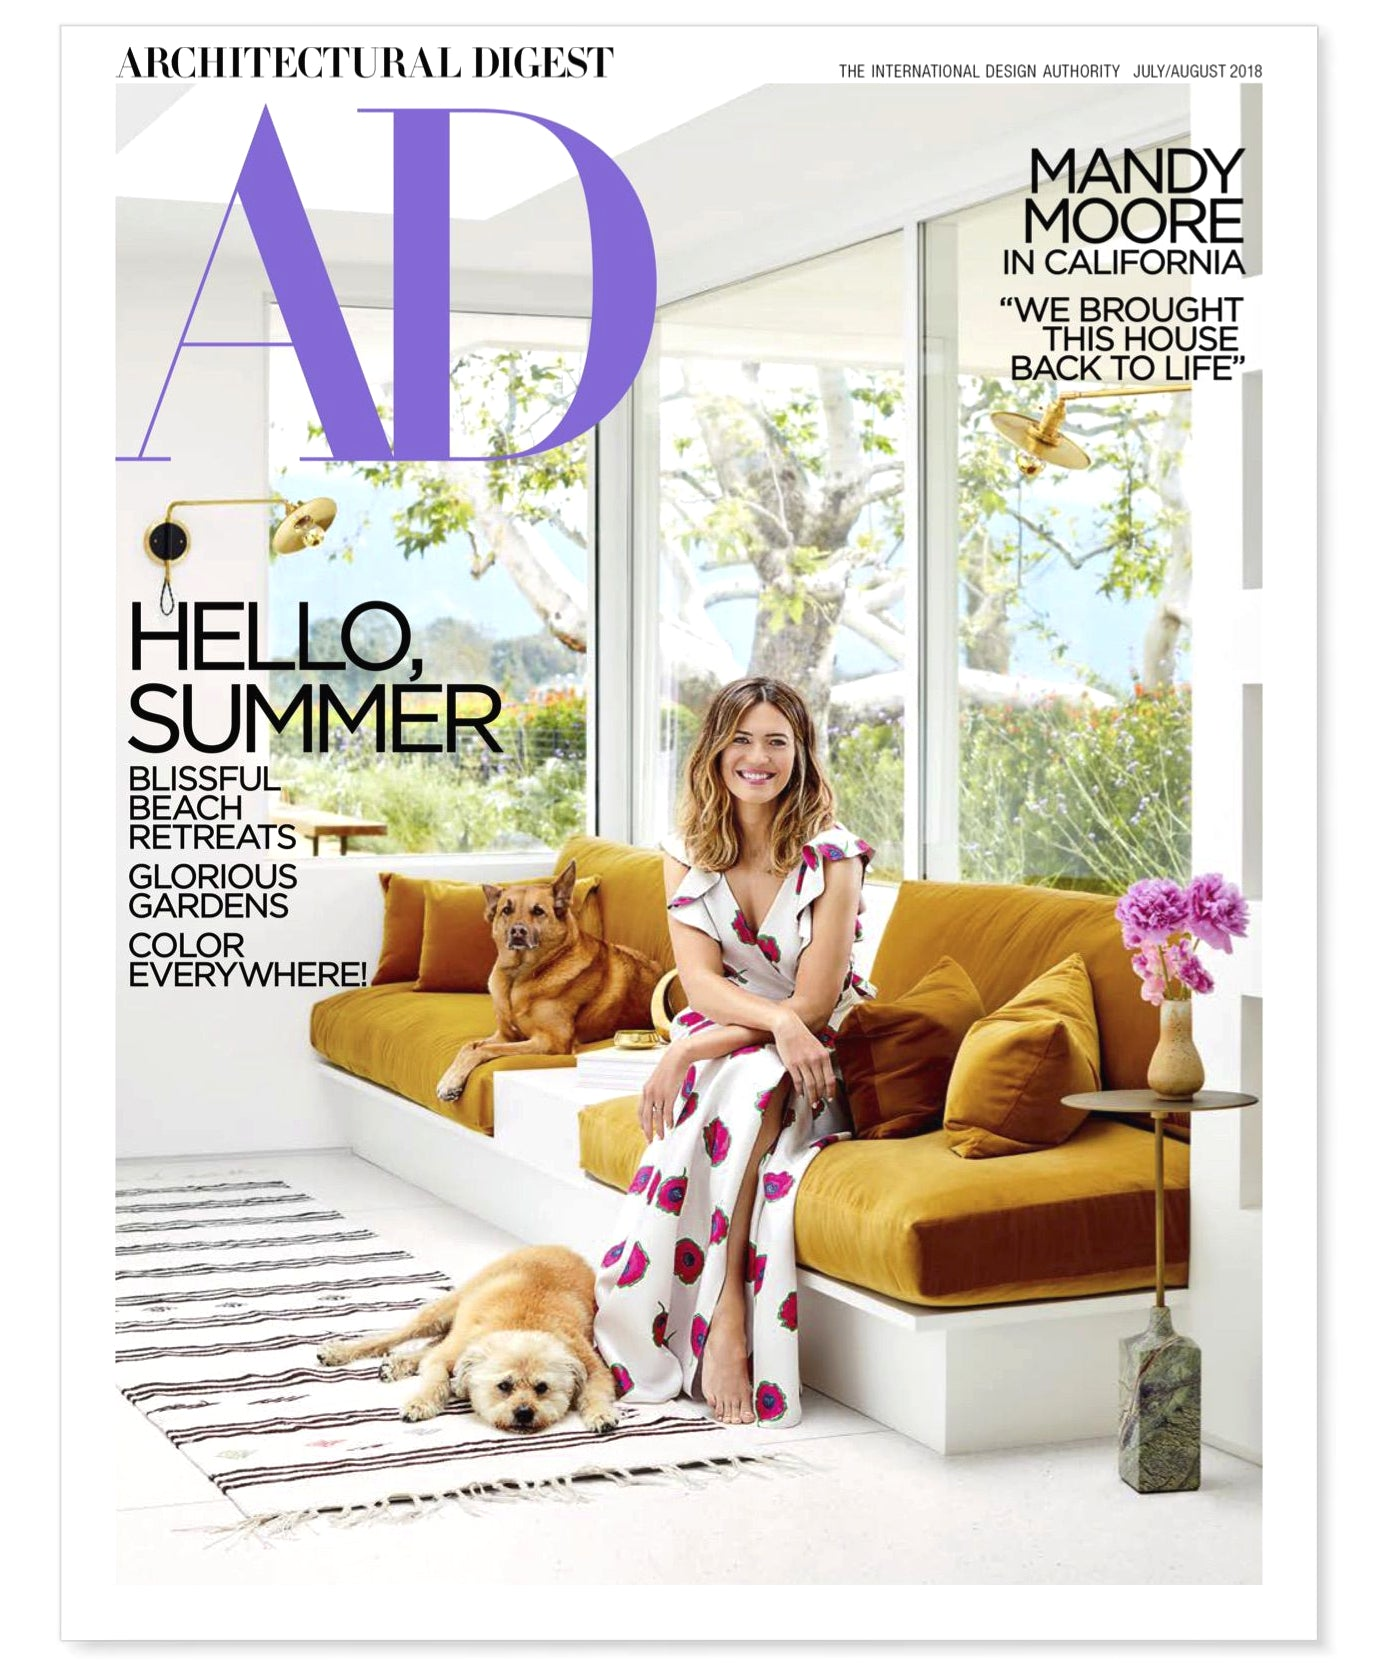 Photonic Studio Szabo Sconce on the cover of Architectural Digest, in the home of Mandy Moore.